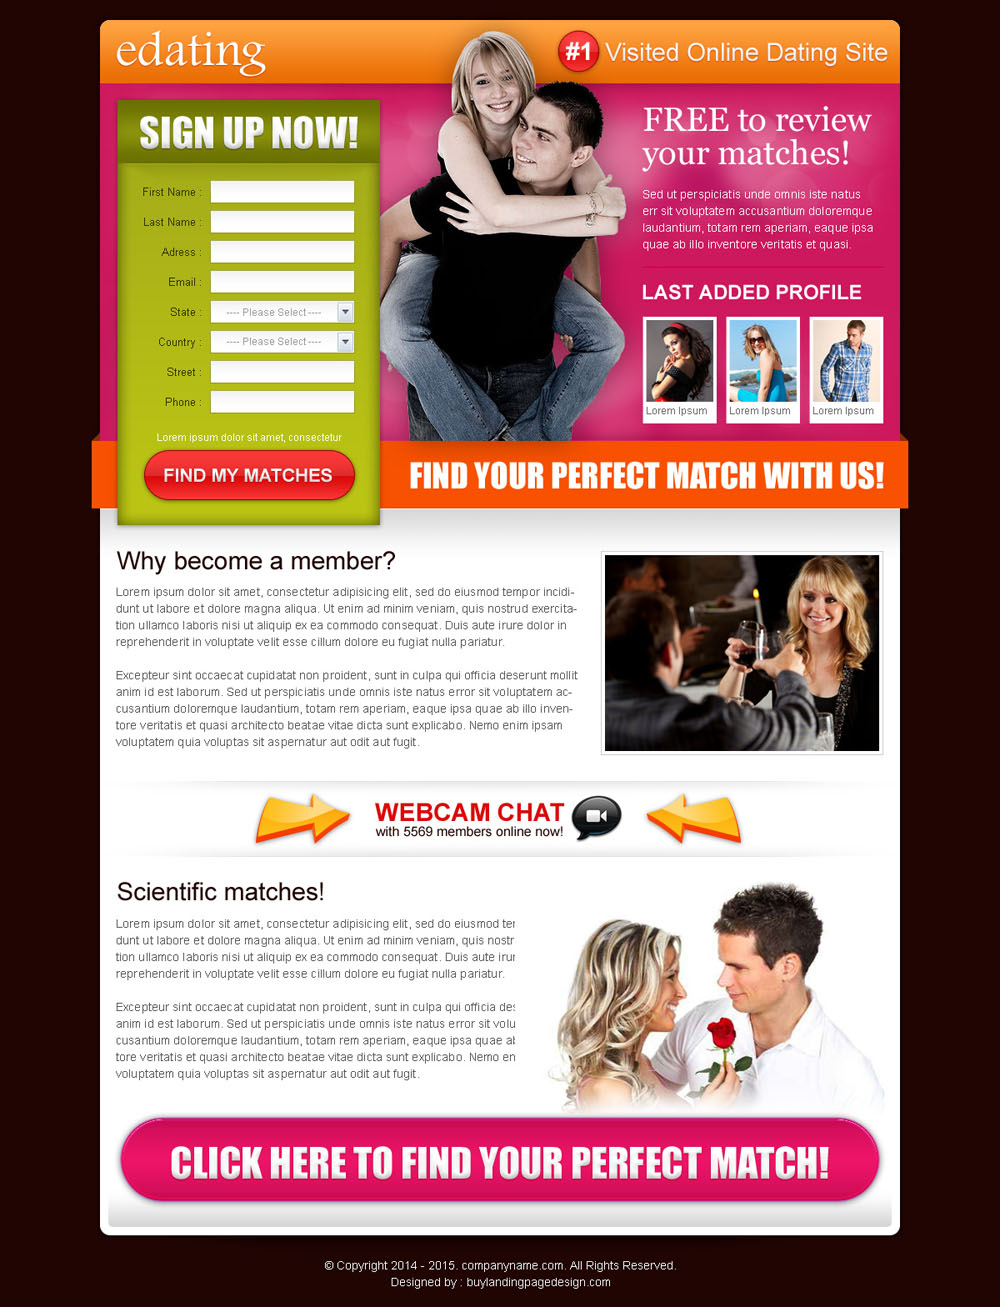 online-dating-landing-page-design-templates-to-capture-leads-003